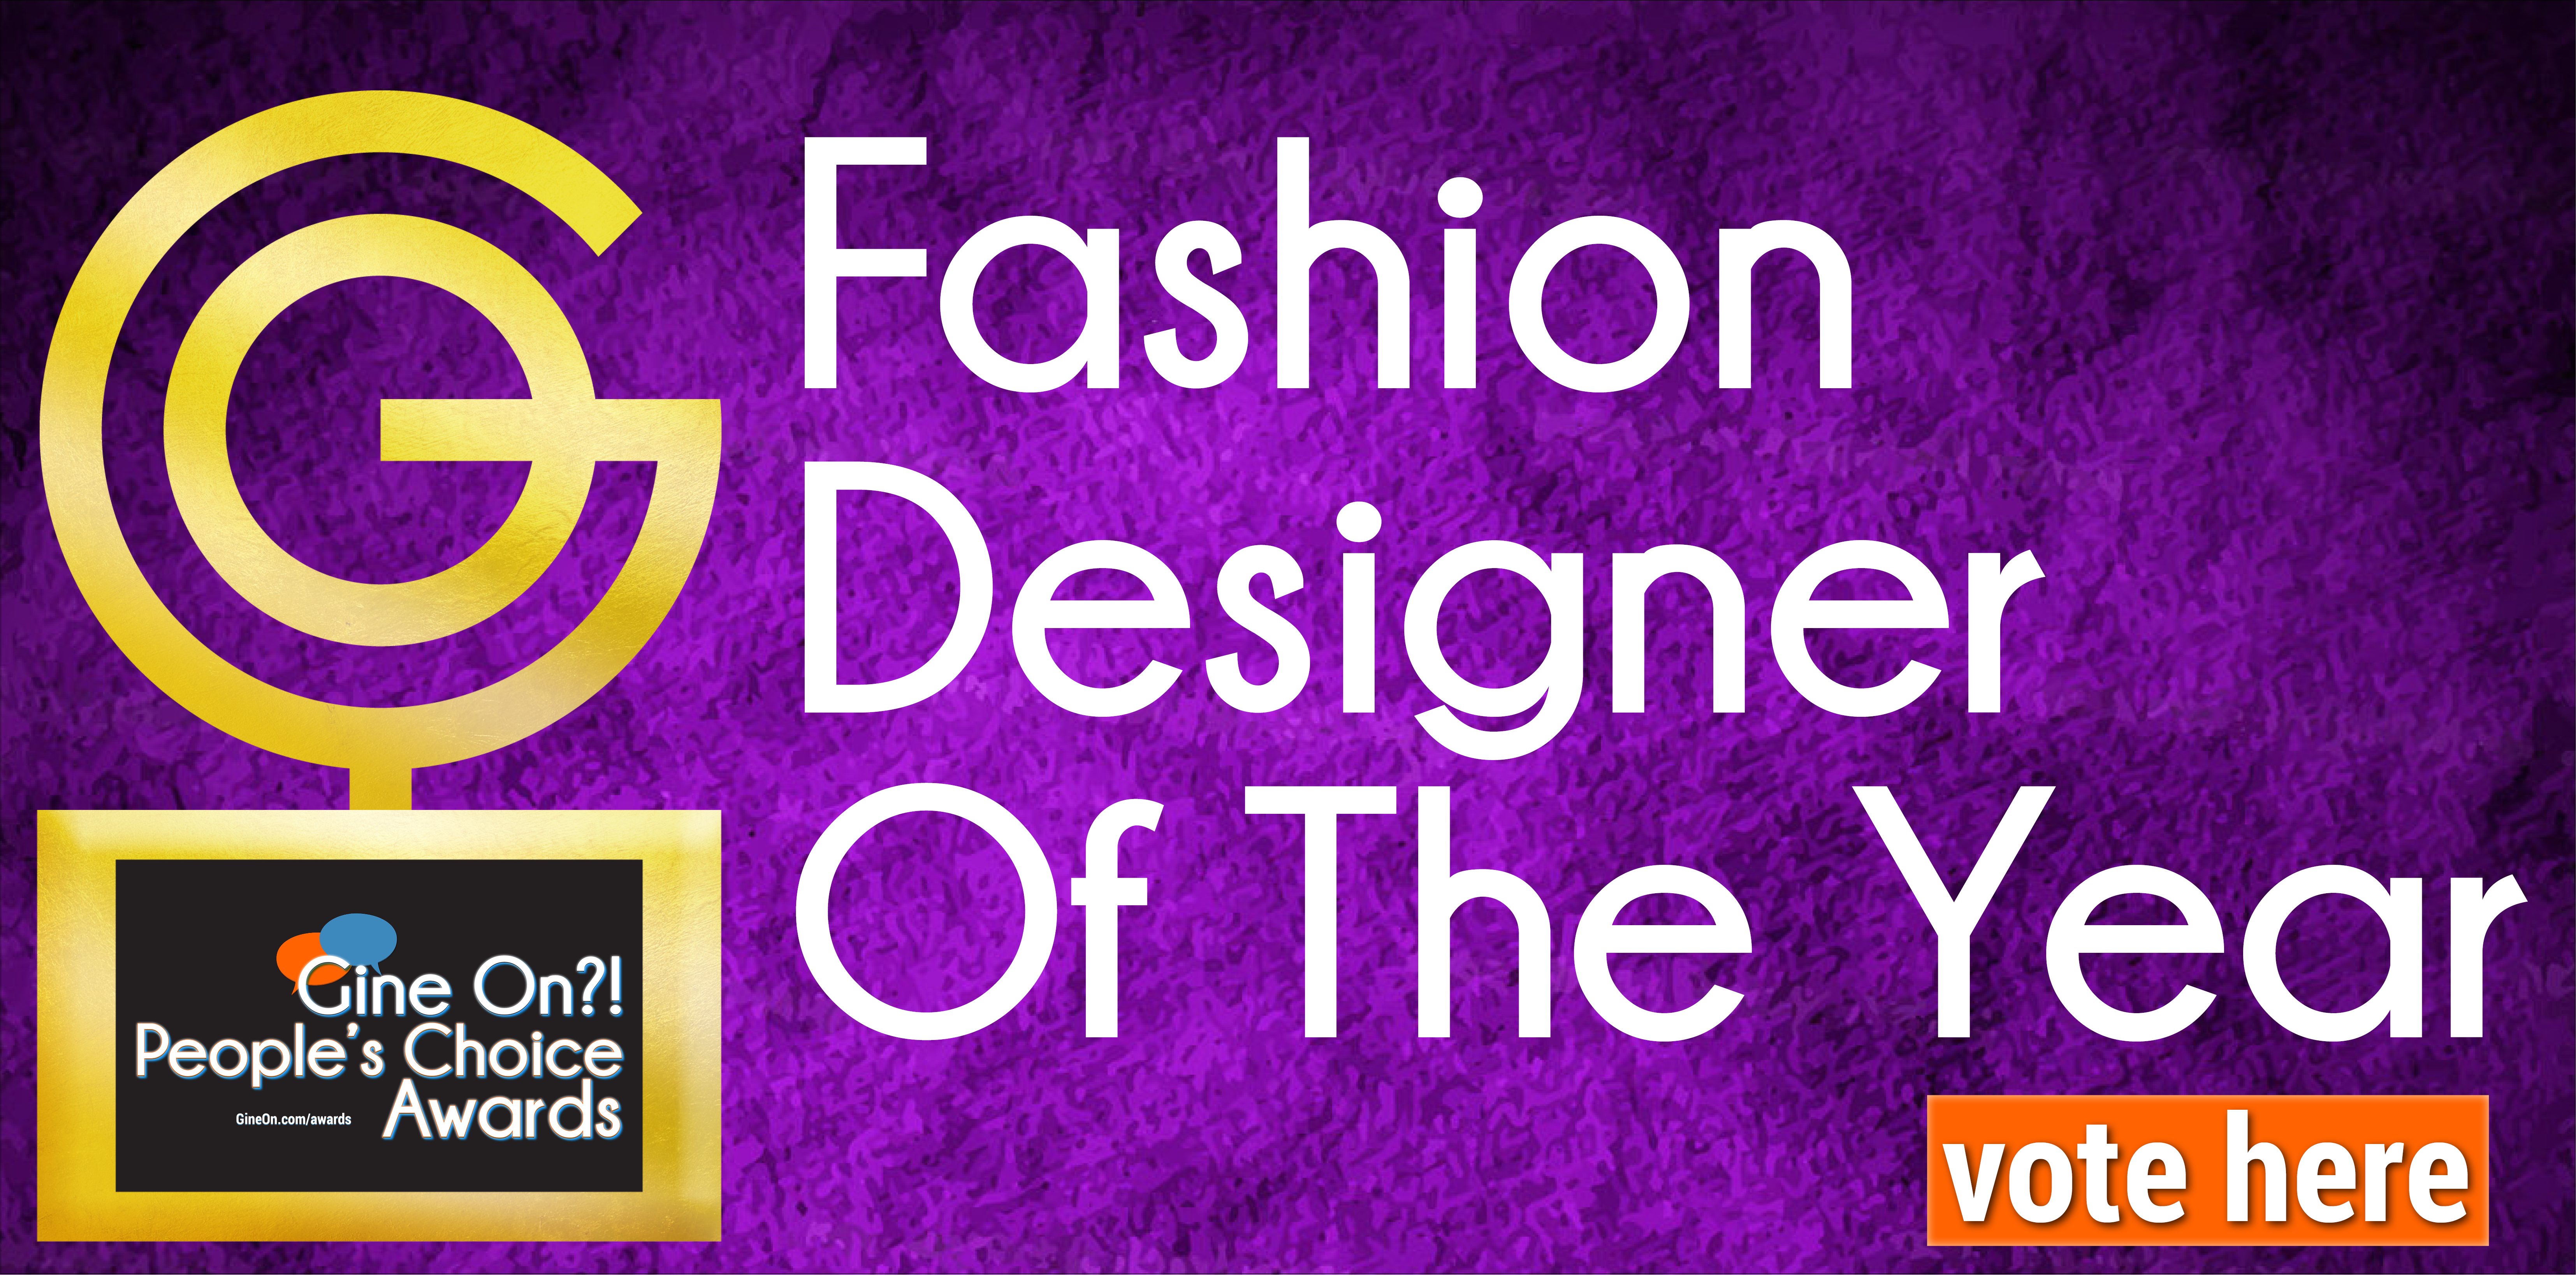 Fashion Designer Of The Year Gine On Bajan Arts And Culture